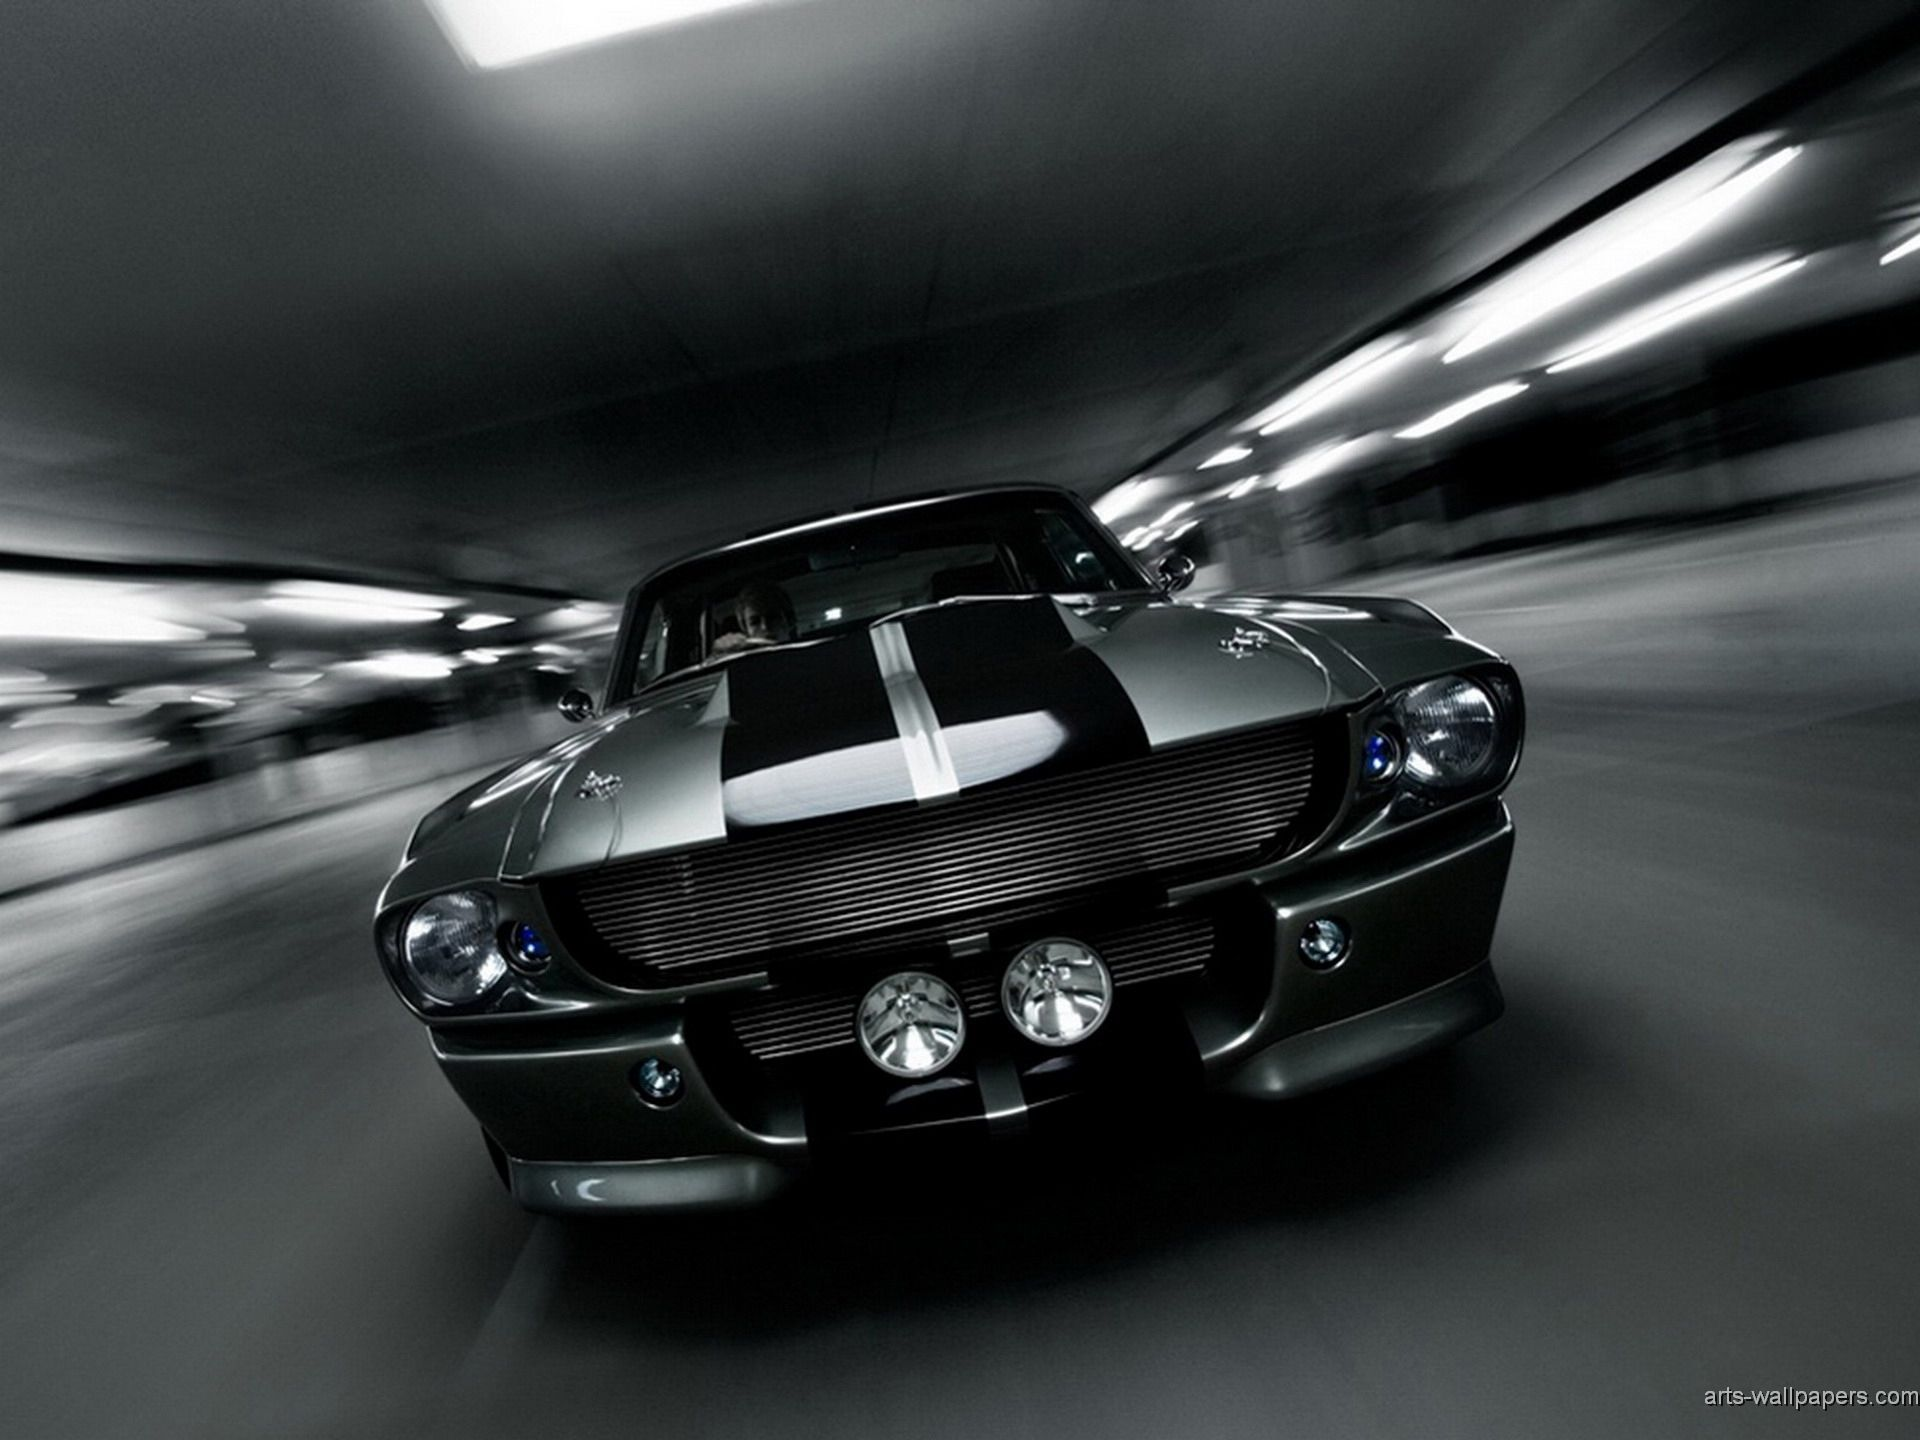 Shelby Mustang Wallpaper High Quality Resolution Cw0 With Images